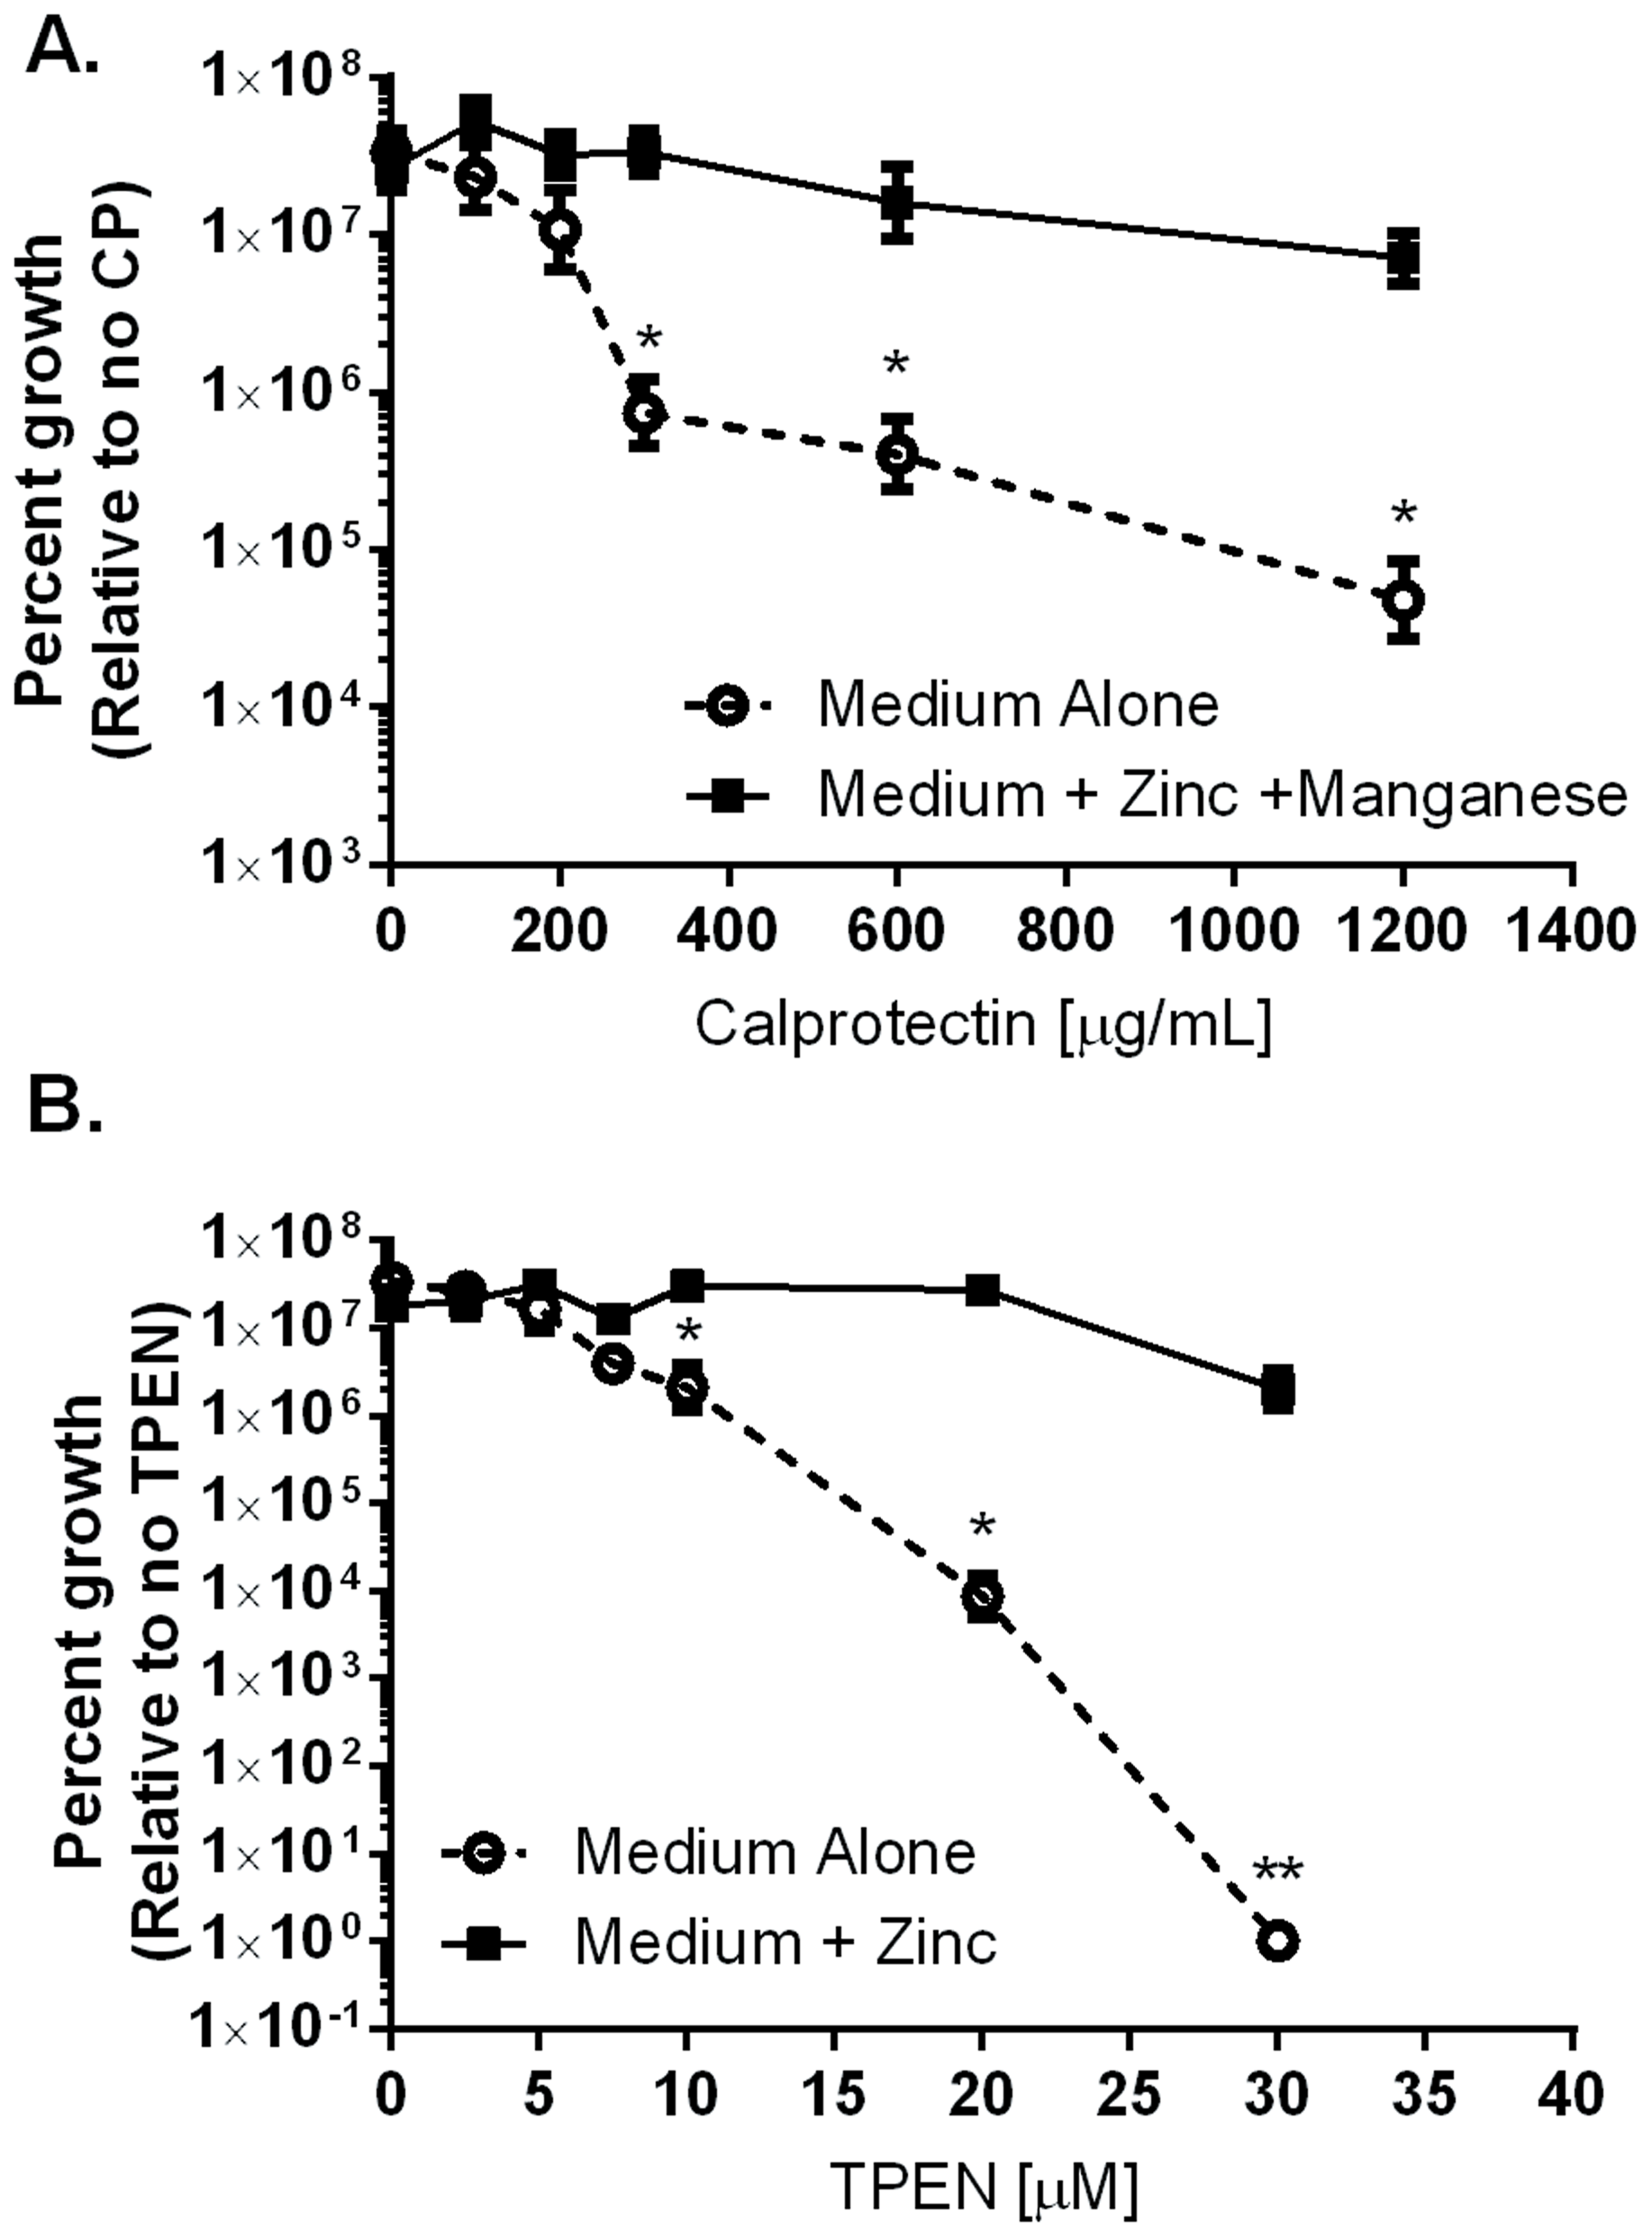 Inhibition of <i>H. pylori</i> growth <i>in vitro</i> by CP or TPEN is dose dependent.